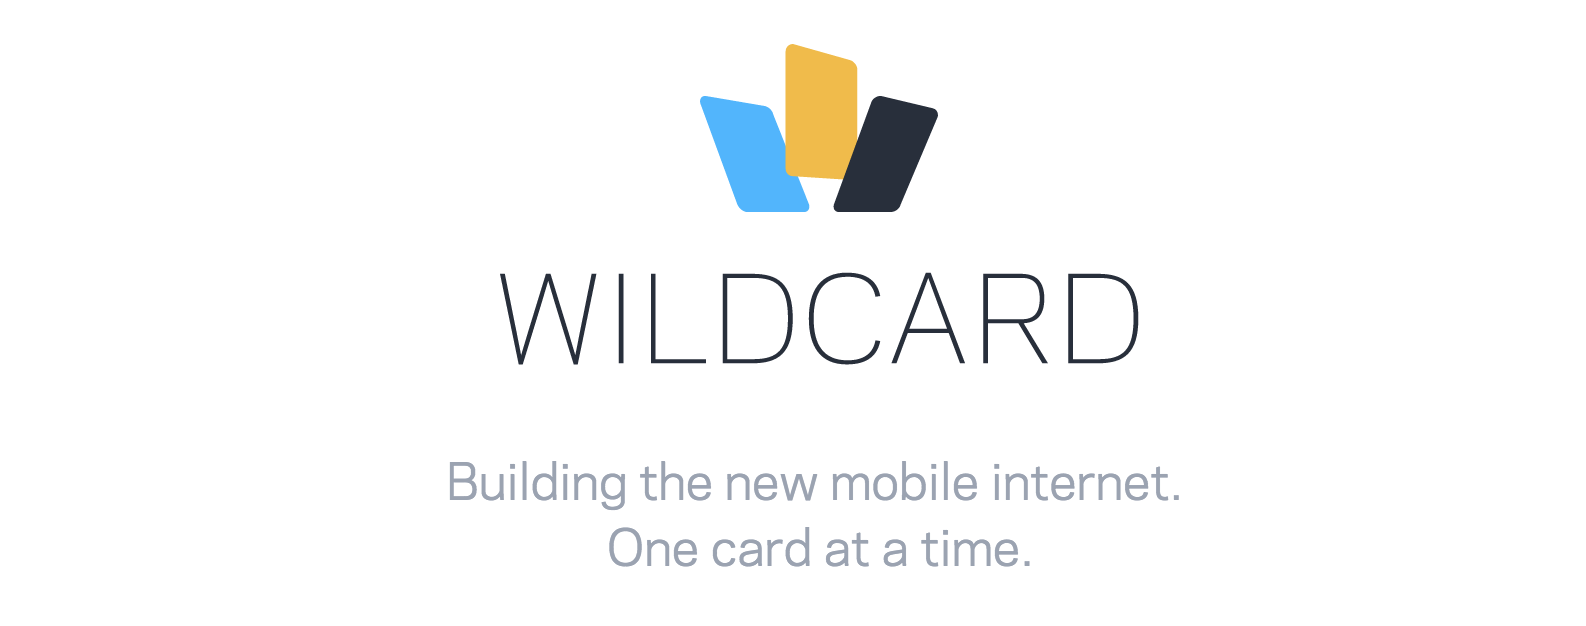 wildcard-original